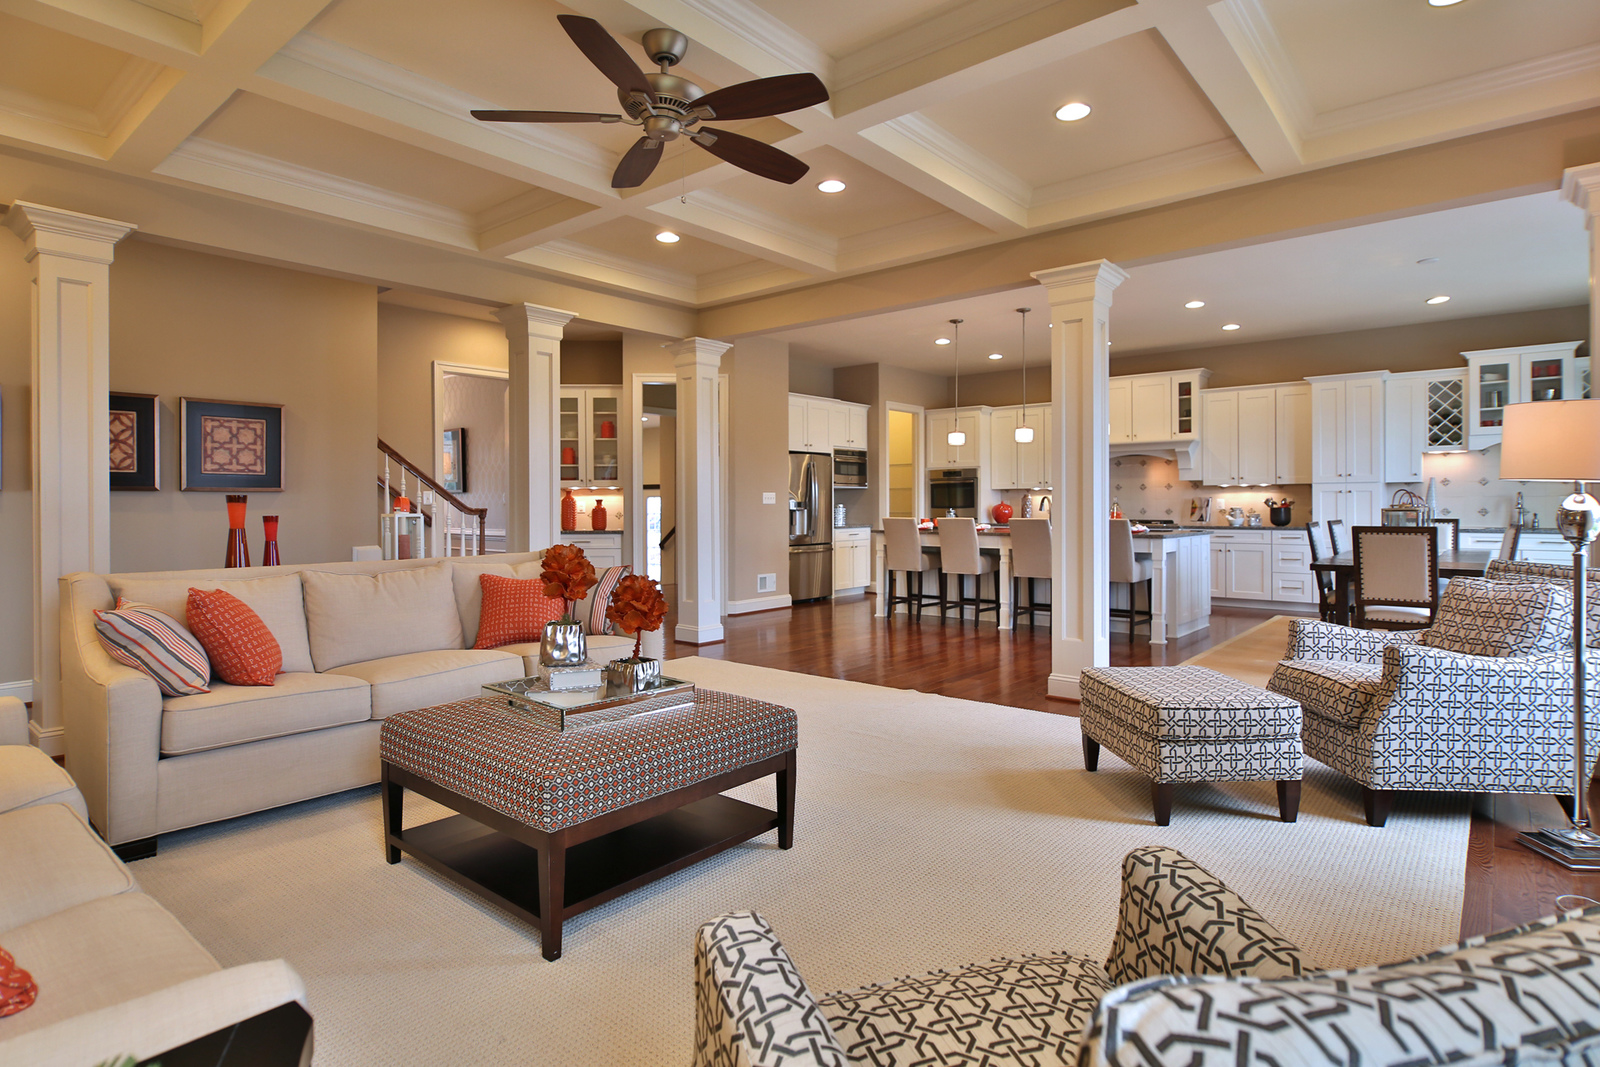 Coffered ceilings, arched doorways, and stately trim are just a few of the finishing touches to make the floorplan you choose your home sweet home.